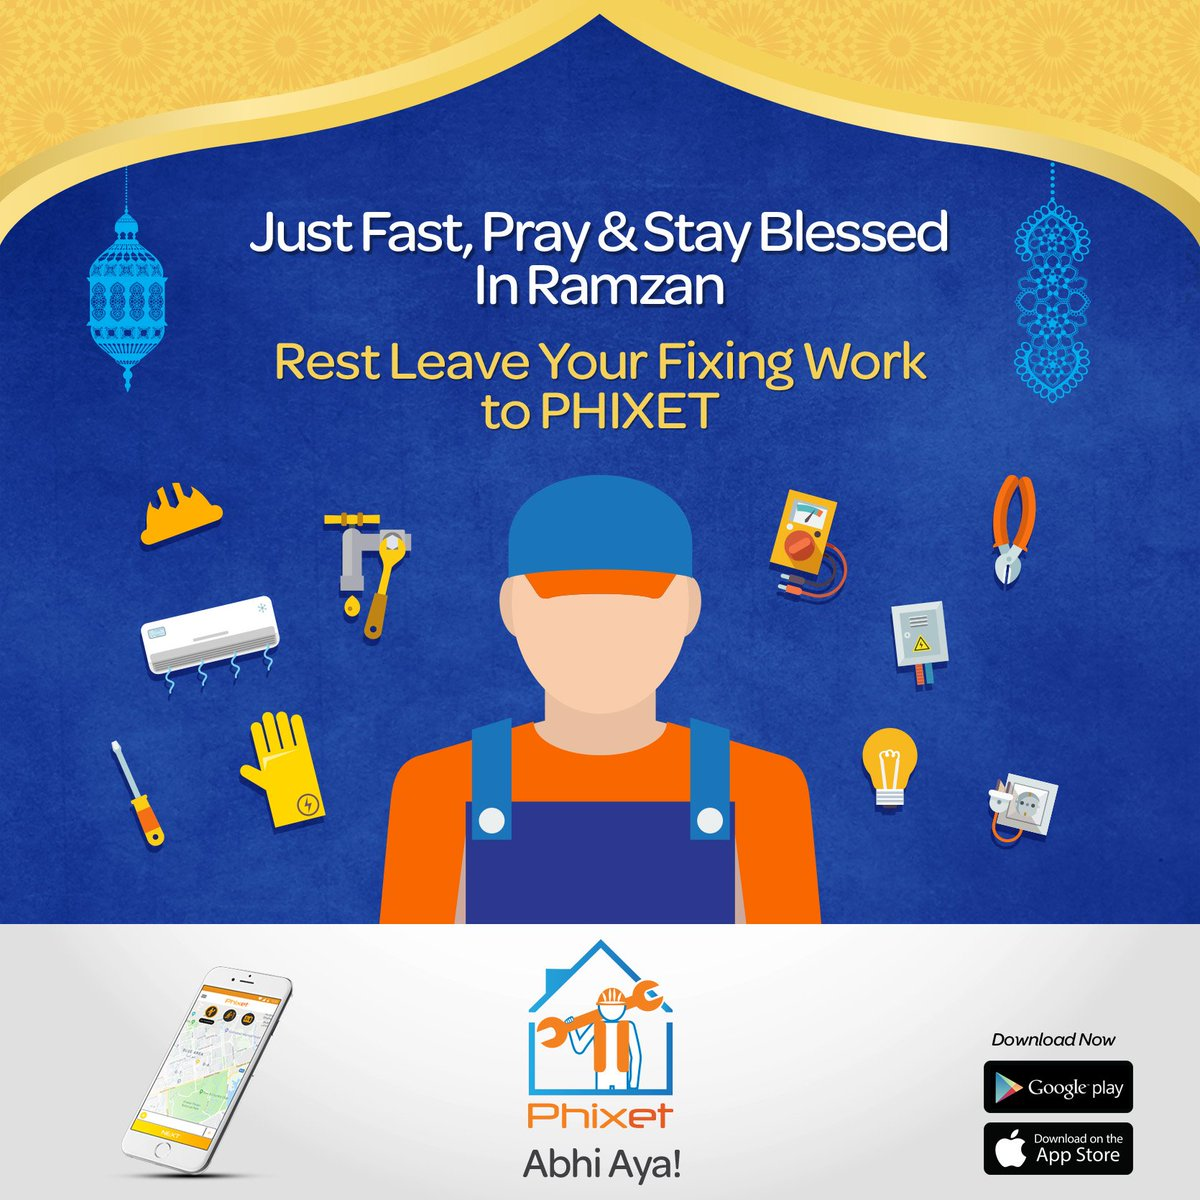 Phixet On Twitter Need An Electrician Plumber Or Ac Technician At Your Door Step Phixet Will Be Your Handyman Download Phixet App Now Android Https T Co Zbqxwtswiv Ios Https T Co B33izvt1cu Just Name It And We Ll